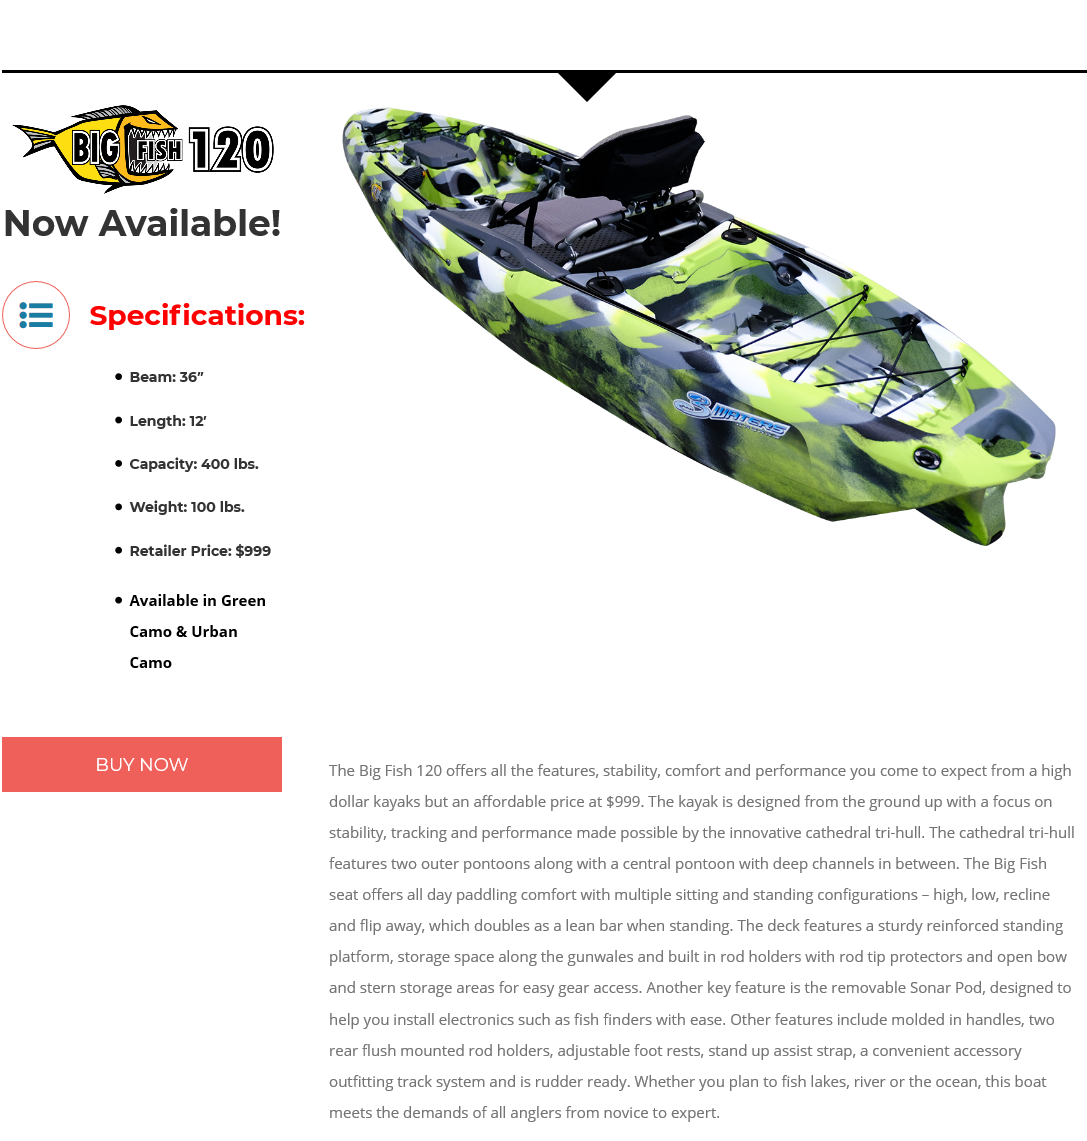 3 Waters Kayaks Big Fish 120 Urban Camo **** Store pickup only No Shipping ****